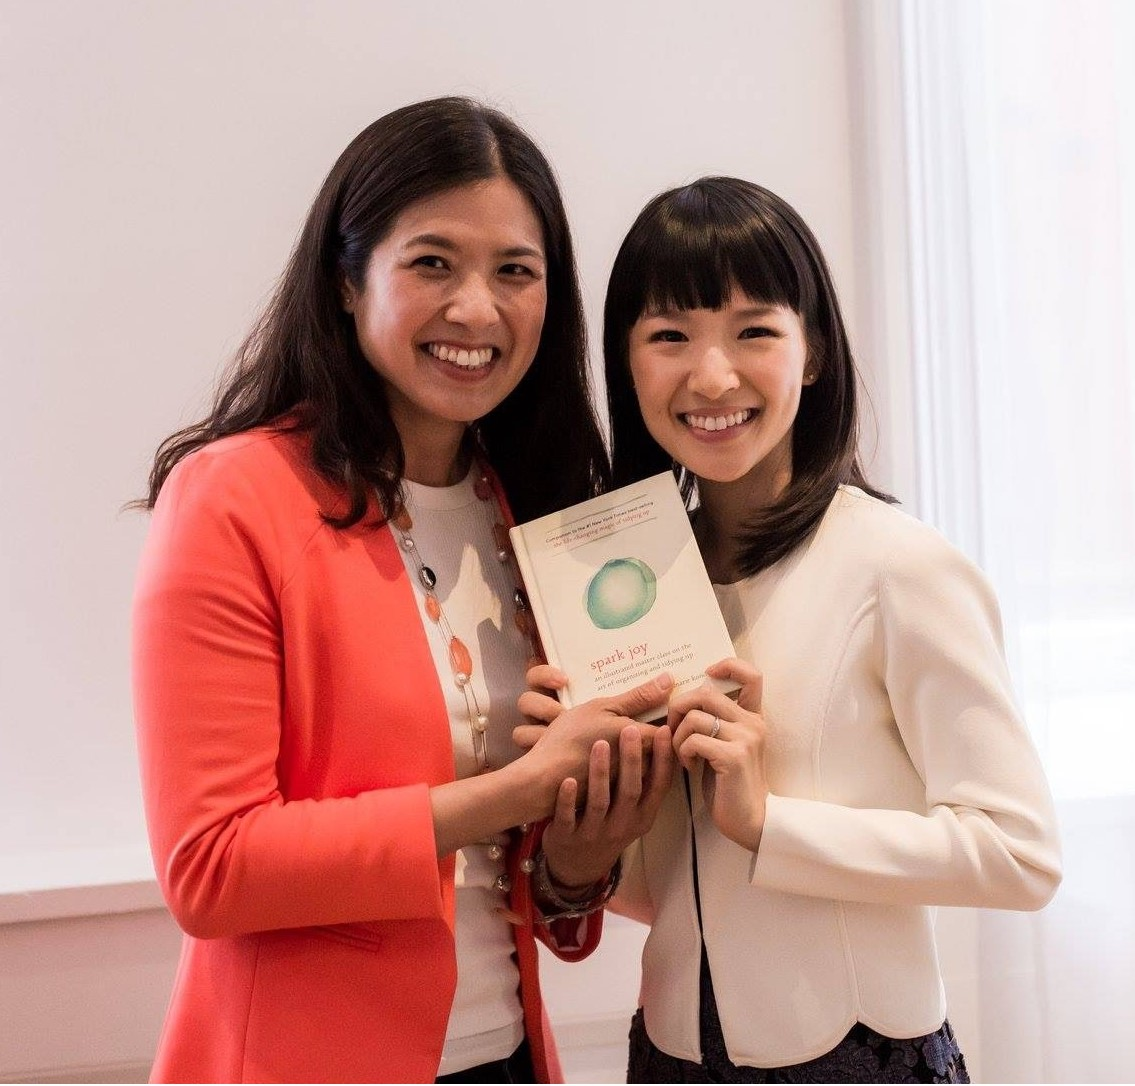 2nd time meeting konmari in new york city   Karen Liu, Certified KonMari Consultant (#88)    Through extensive training with the KonMari team, Karen became the 4th Certified KonMari Consultant in the San Francisco Bay Area, currently based in Burlingame.